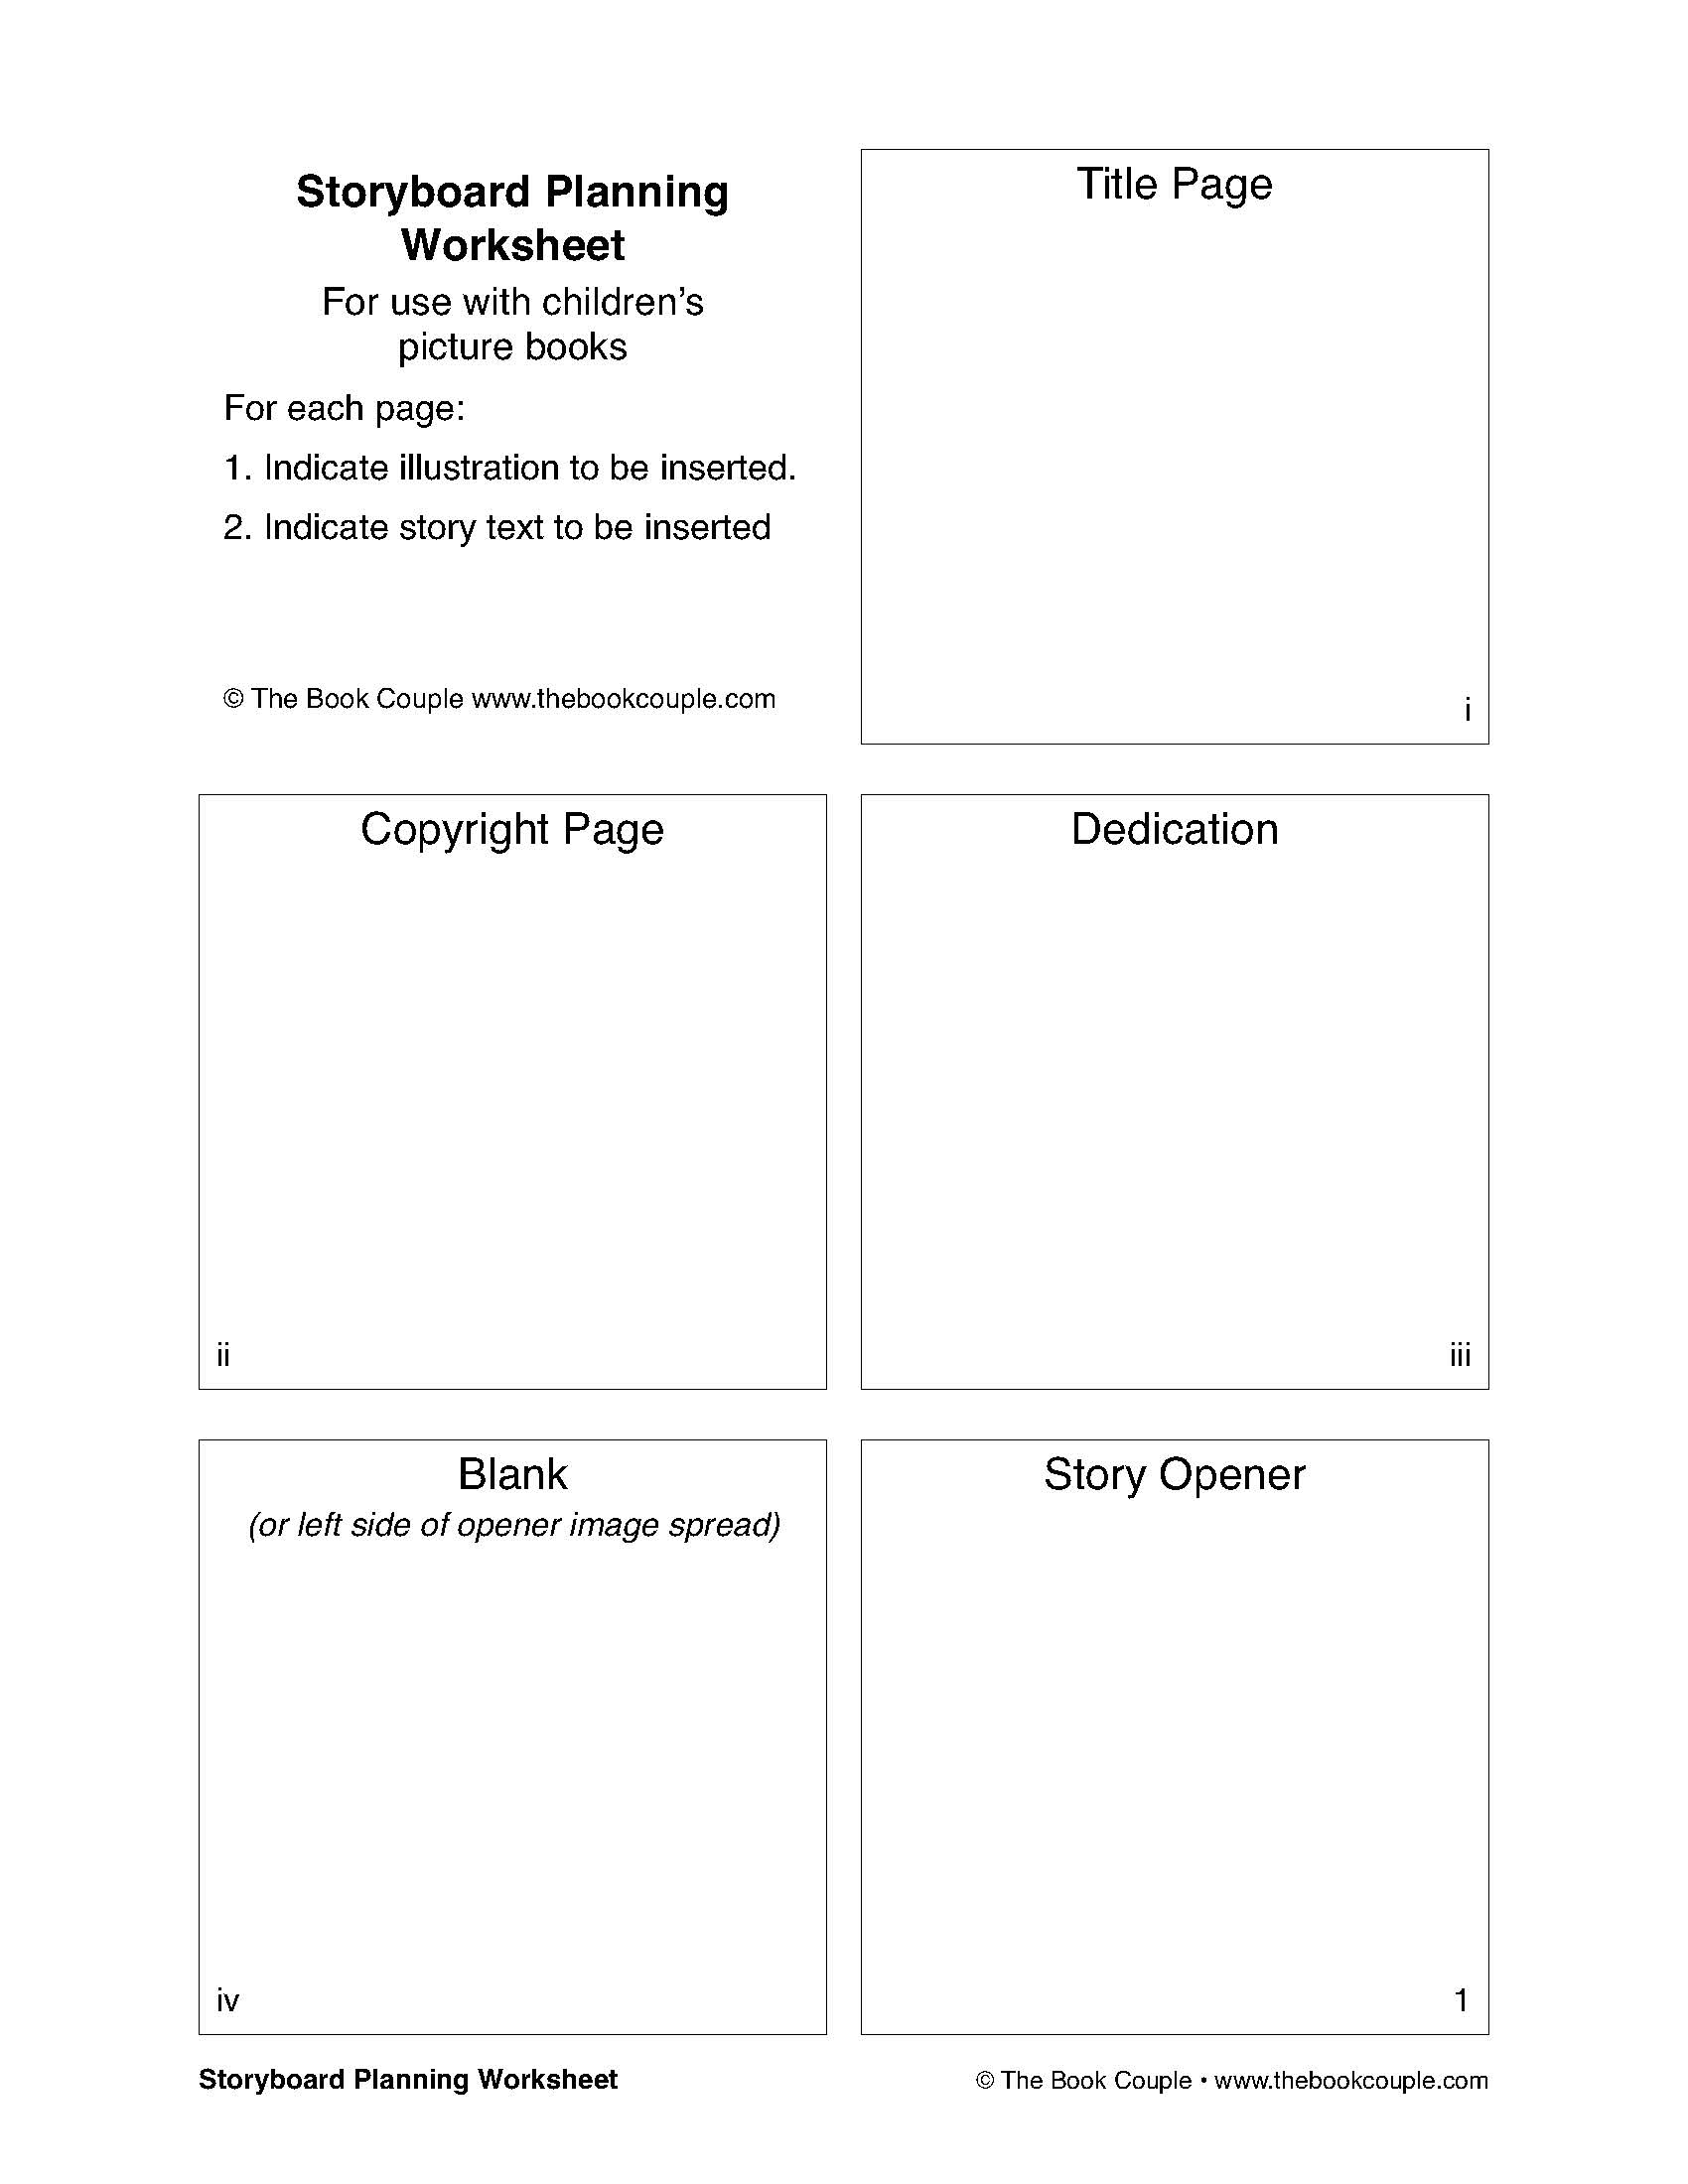 Storyboard Planning Worksheet for Use with Children's Picture Books ...